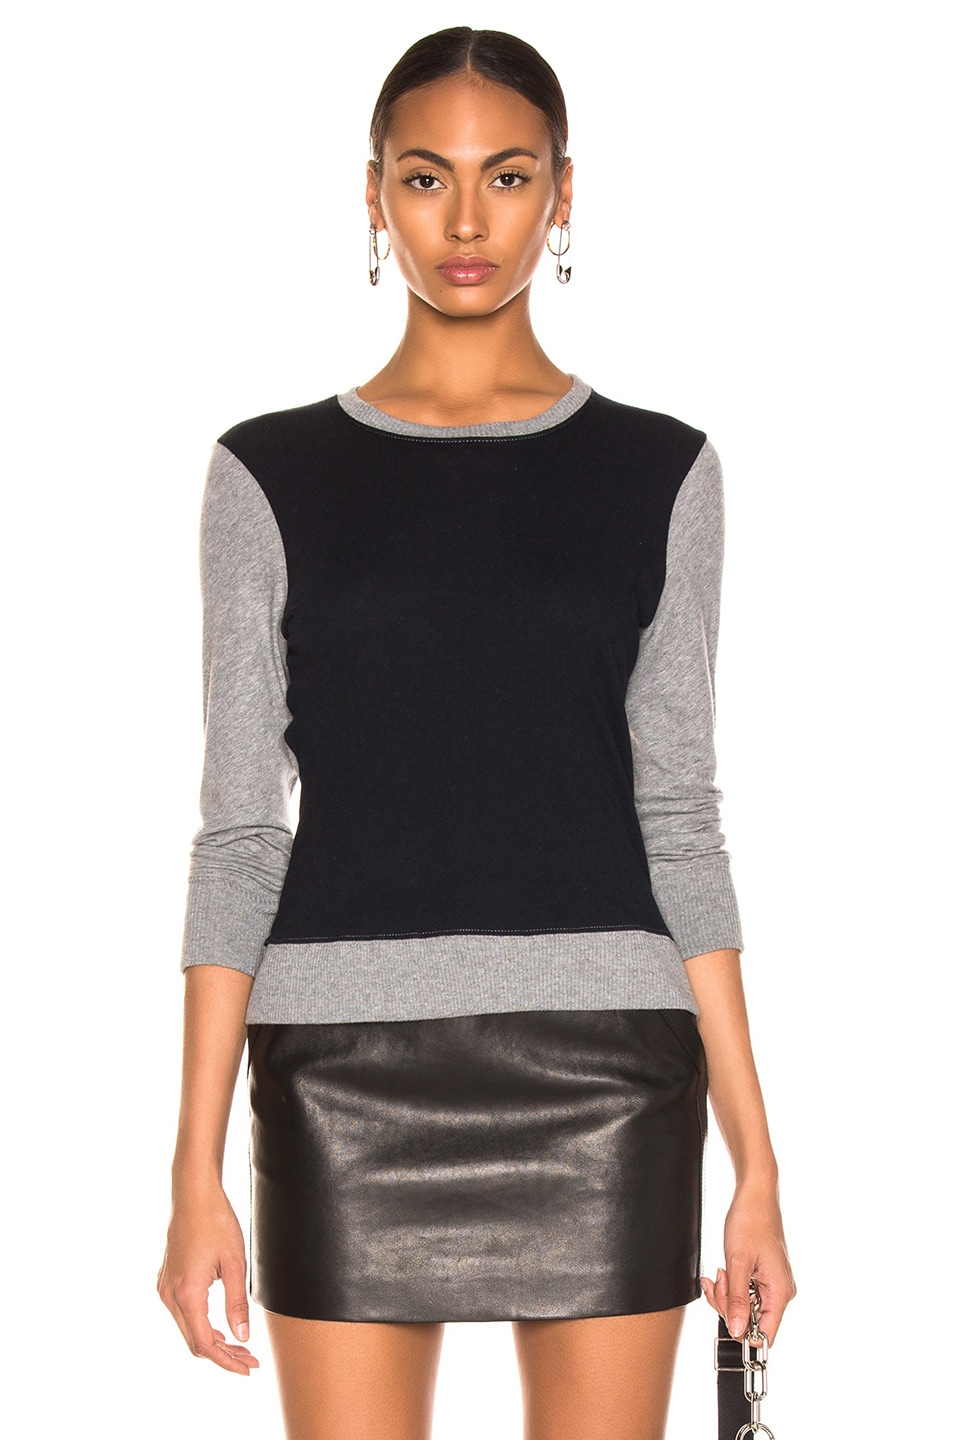 914a5f5d4f18 Image 1 of Enza Costa Cashmere Color Block Sweatshirt in Smoke & Cadet